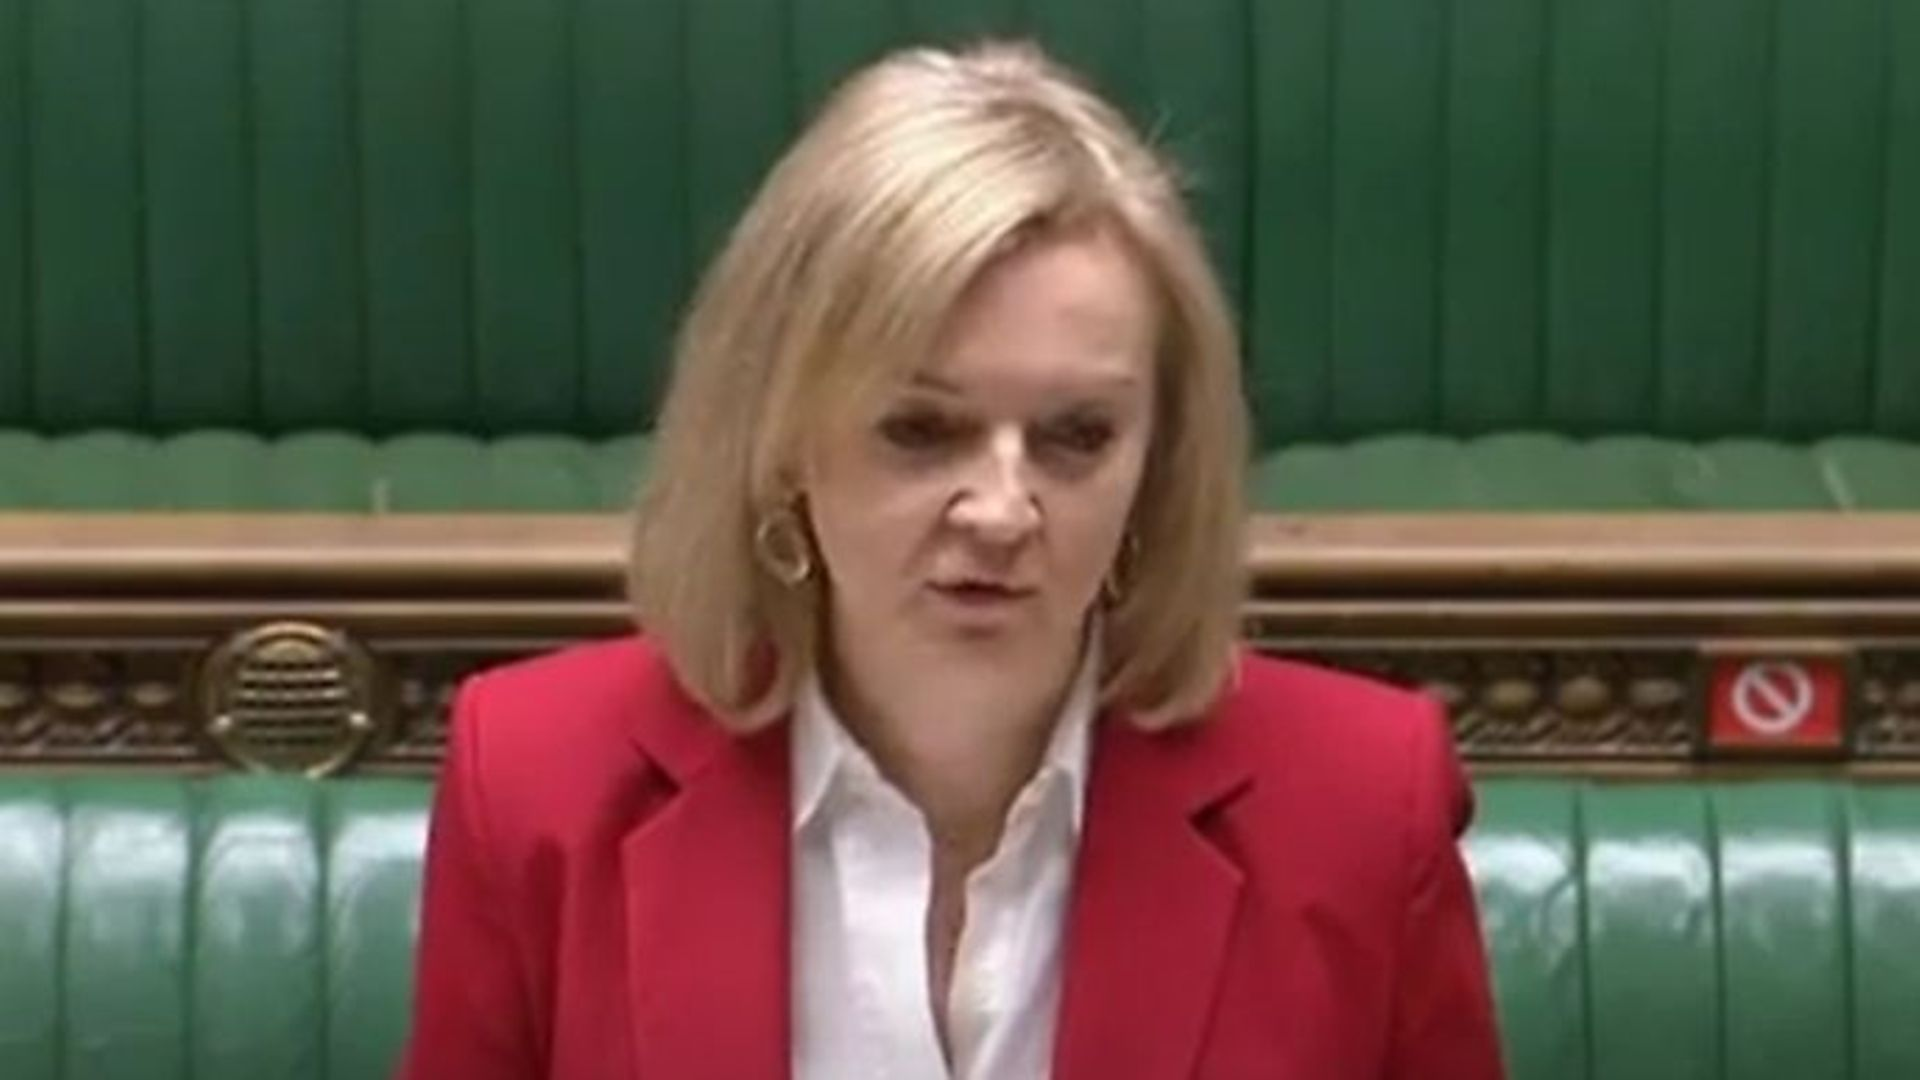 Liz Truss told MPs that new trade deals after Brexit will 'undermine' British farmers - Credit: Parliamentlive.tv